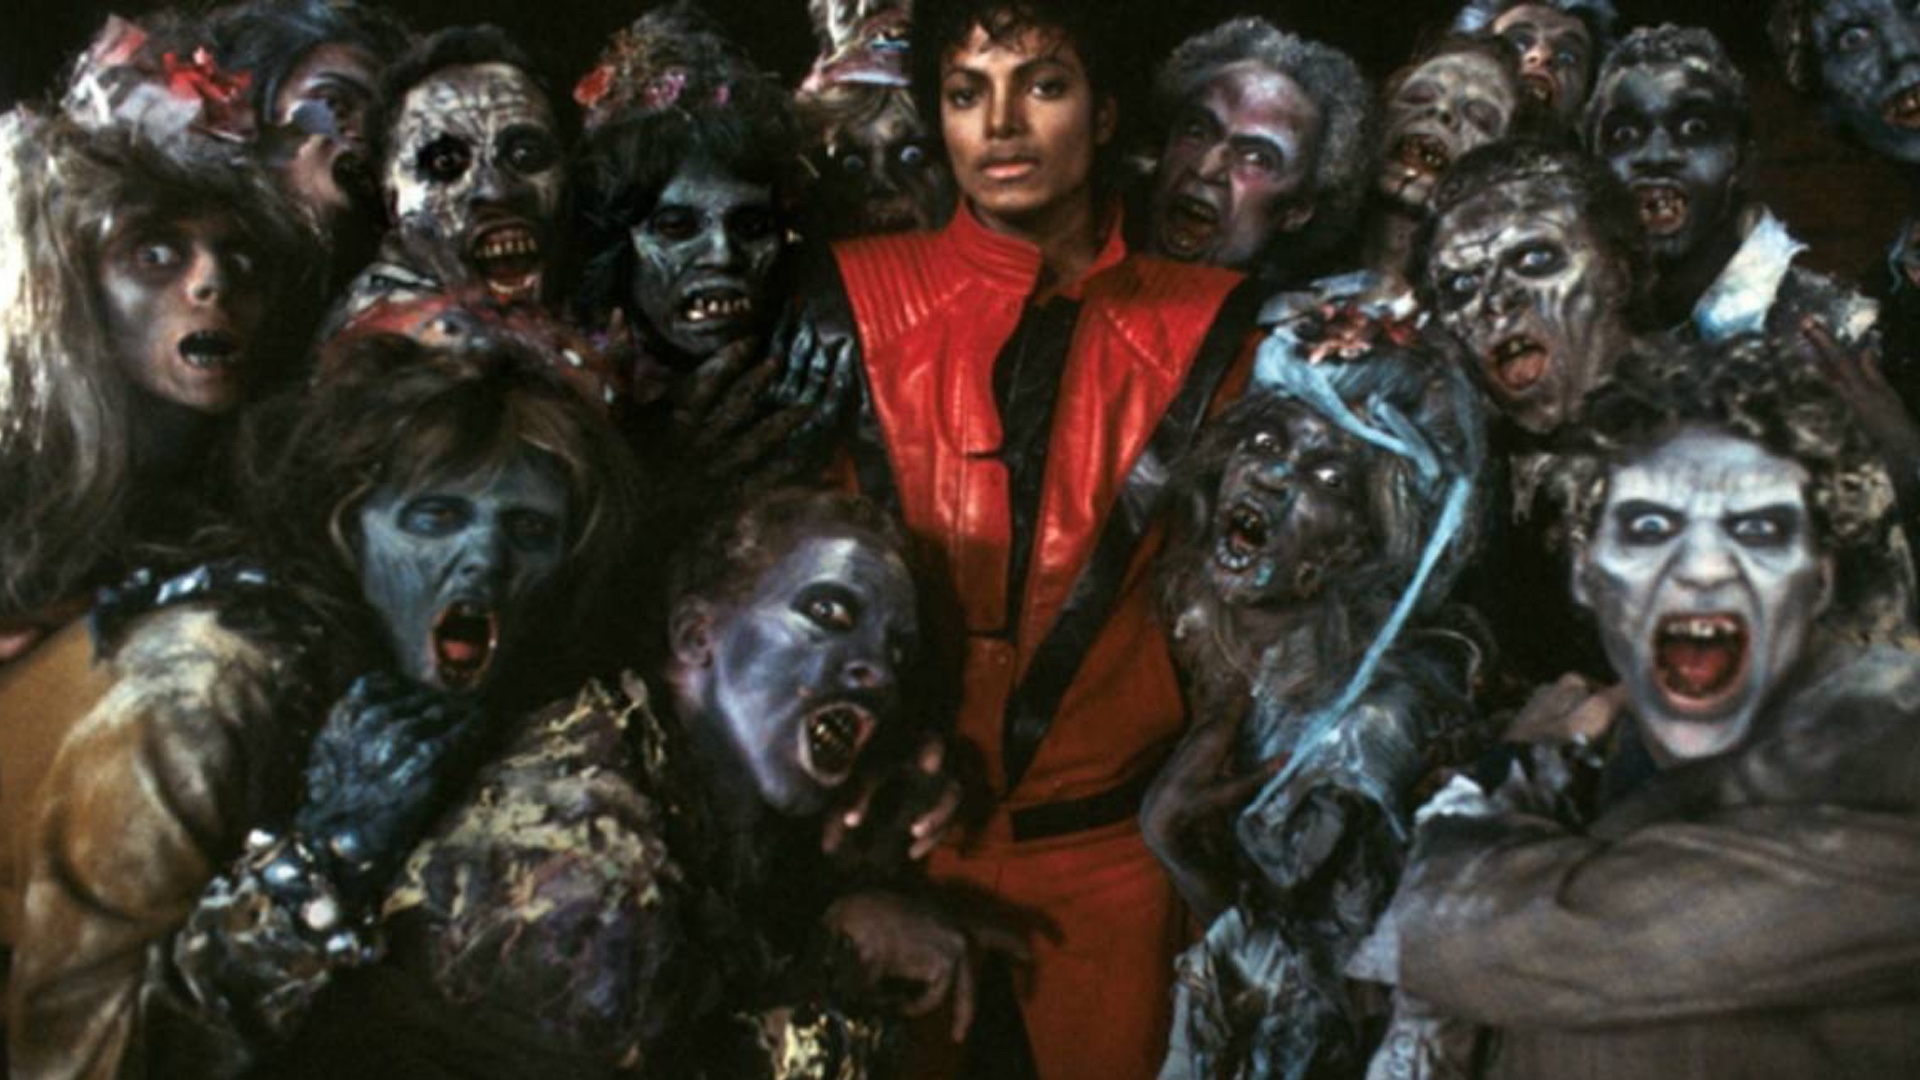 It's been rumored for some time that Michael Jackson's classic short  film/music video Thriller would be getting a 3D conversion. Well, the rumor  is true and ...